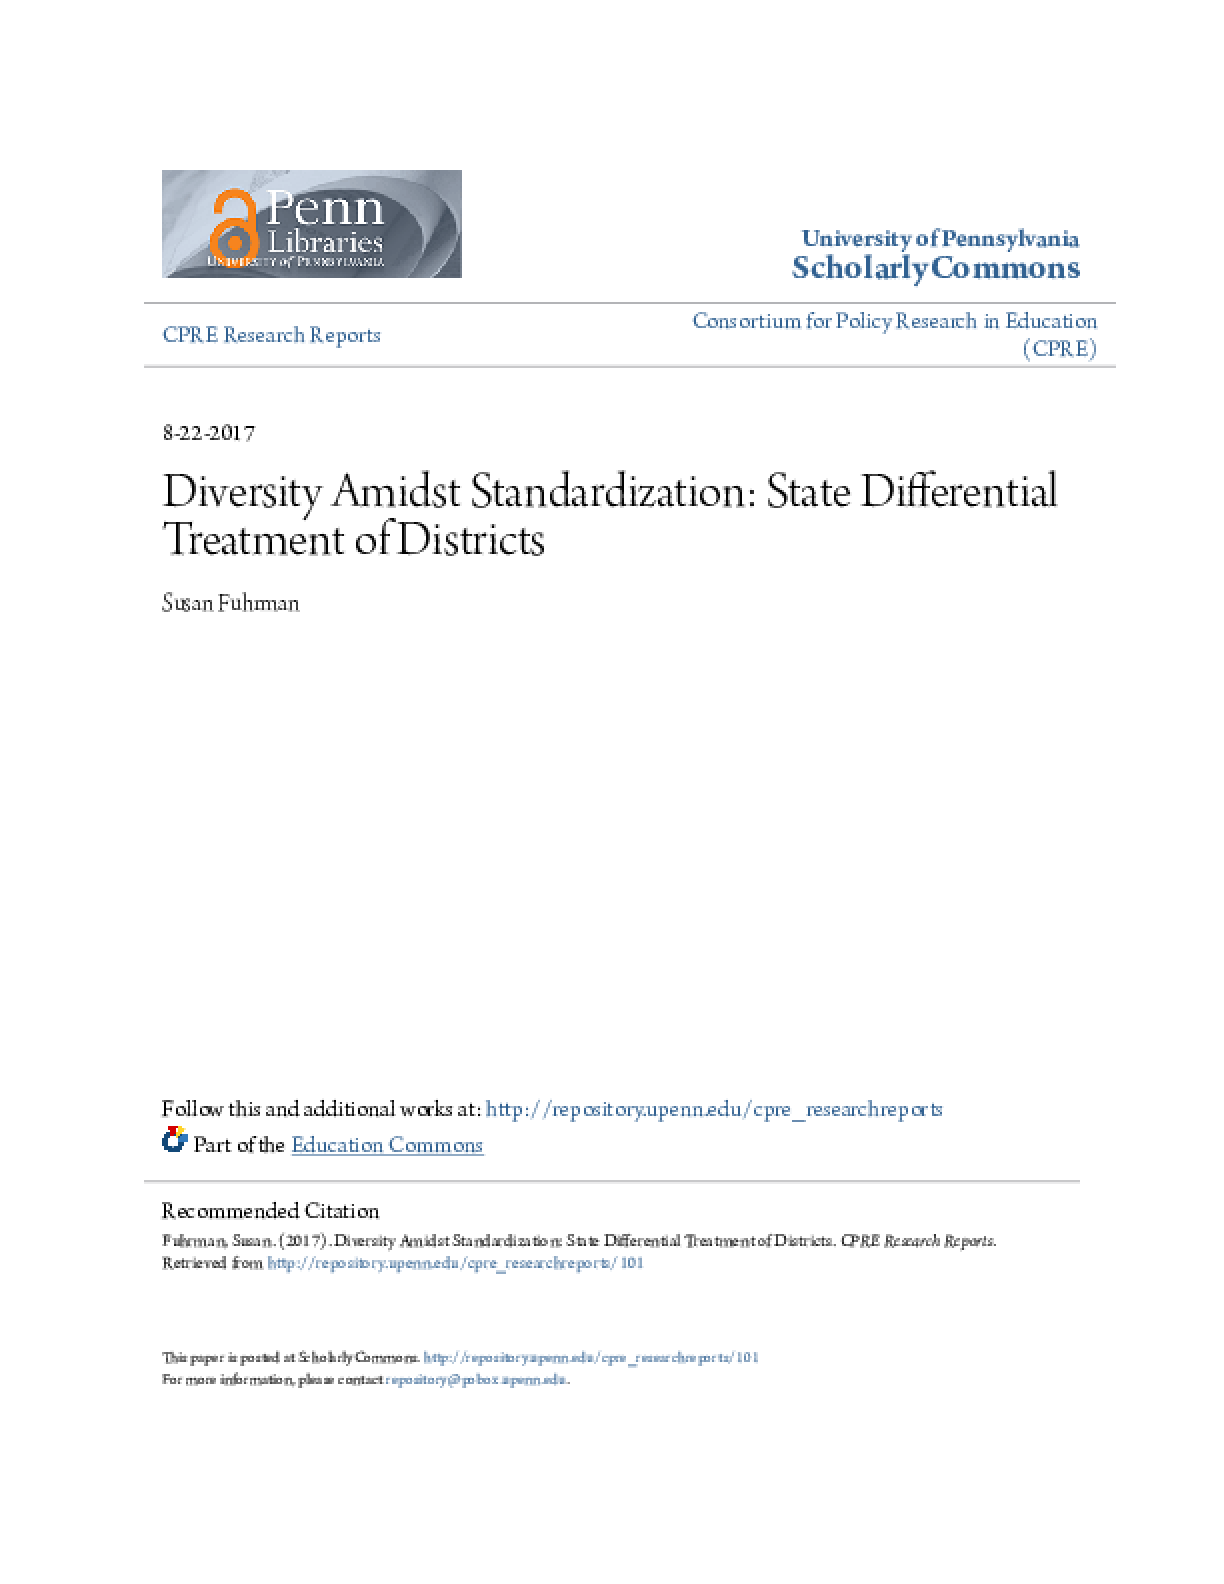 Diversity Amidst Standardization: State Differential Treatment of Districts